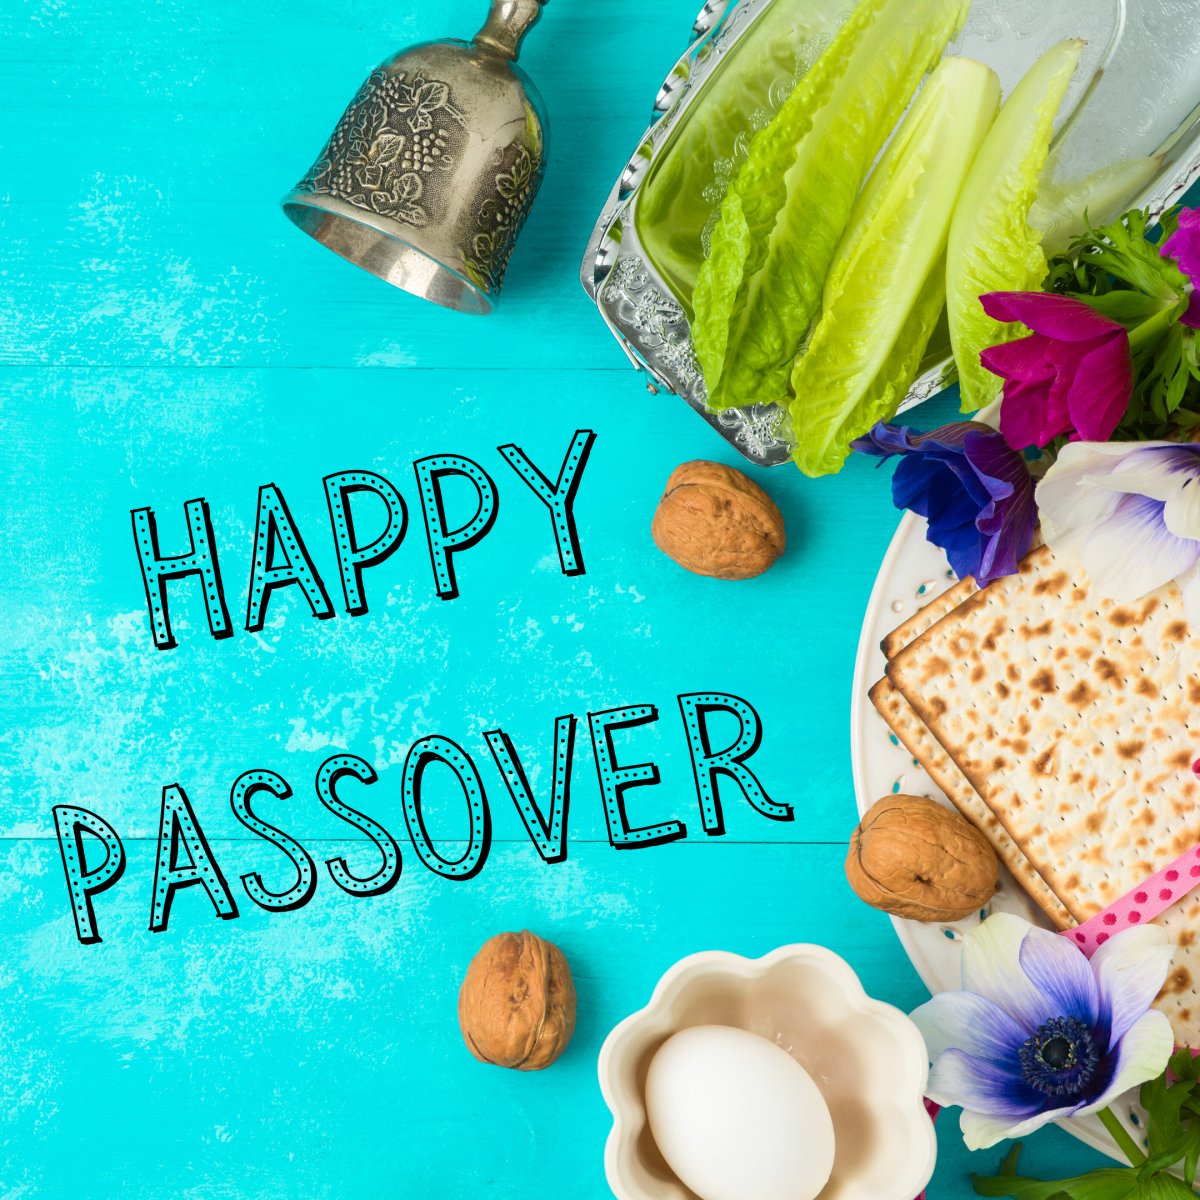 Who says the Seder can't be vegan? Use this guide to veganize your Seder and other Passover meals.